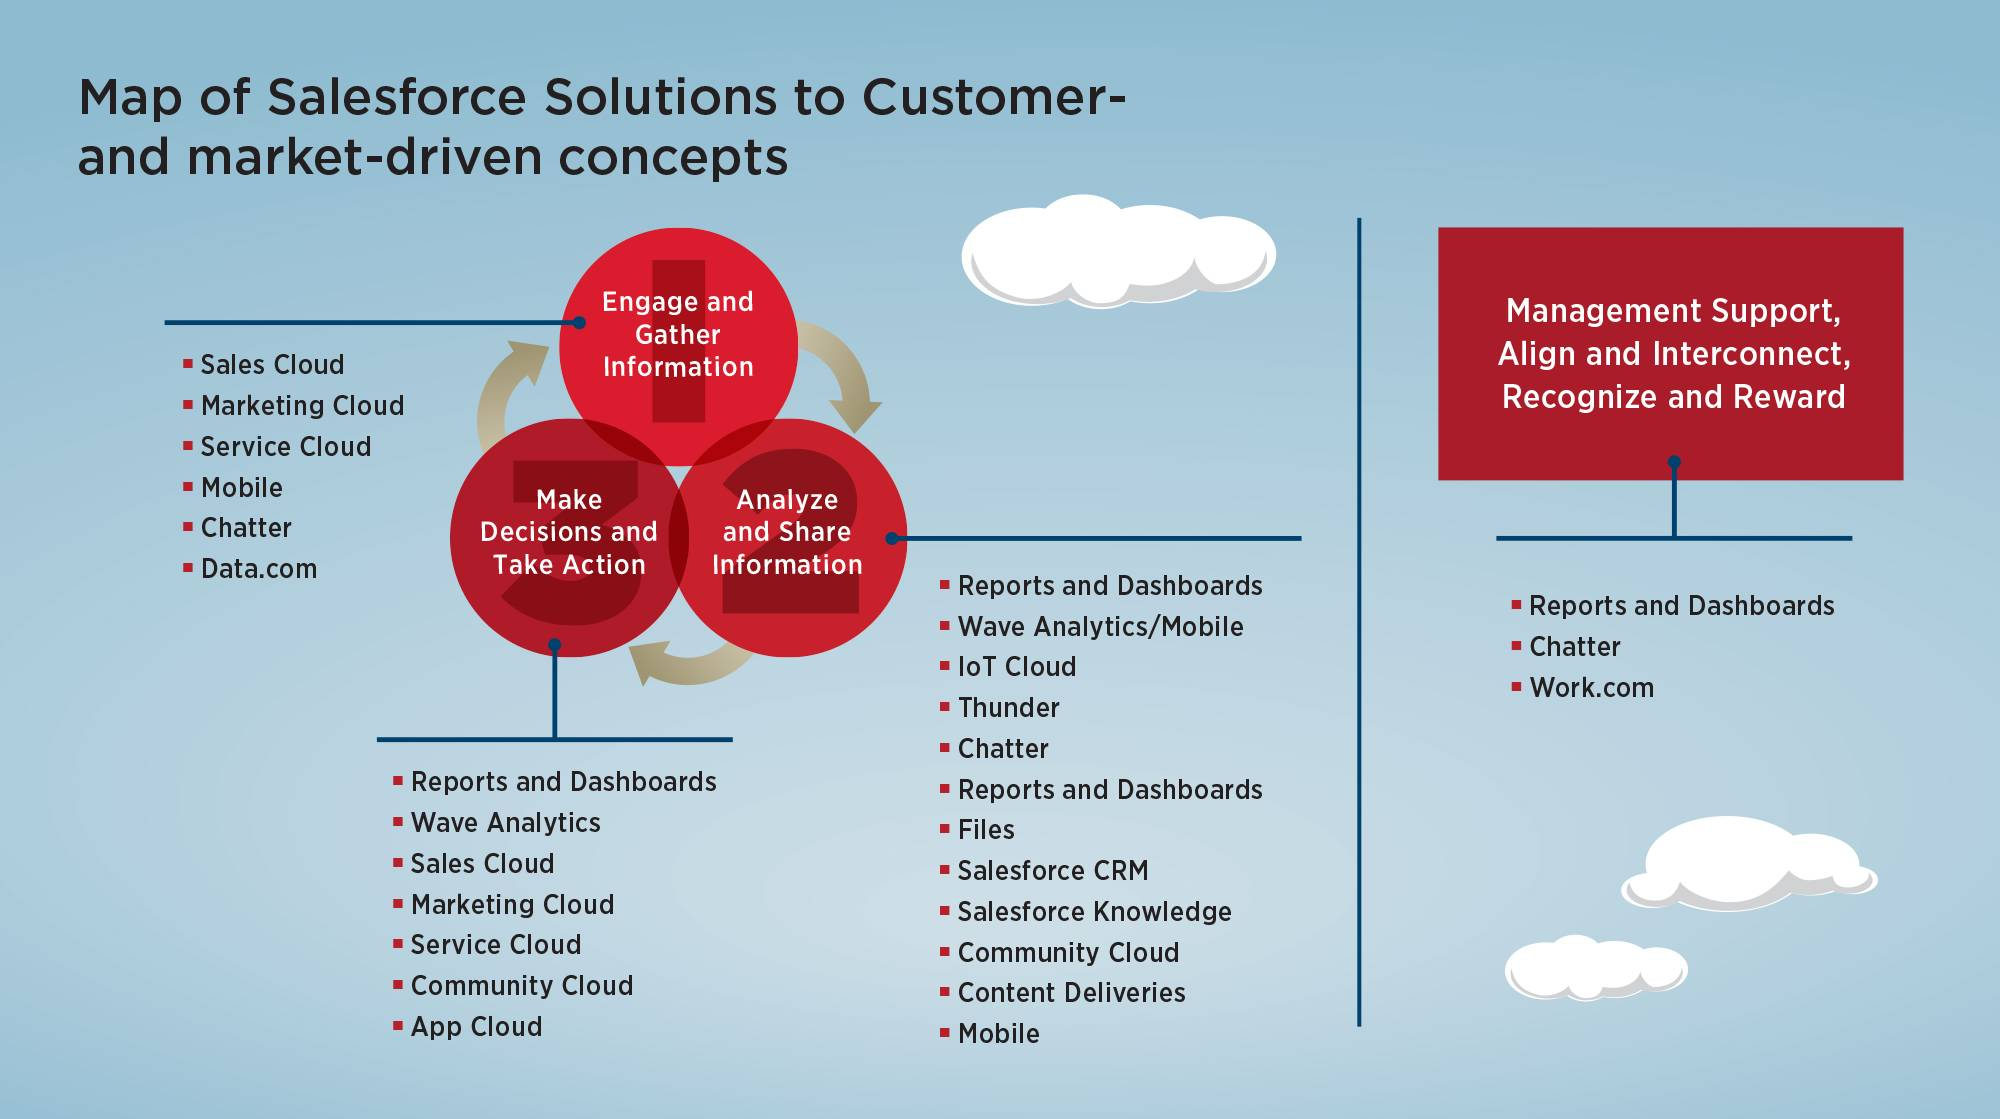 Map of Salesforce Solutions to Customer- and market-driven concepts